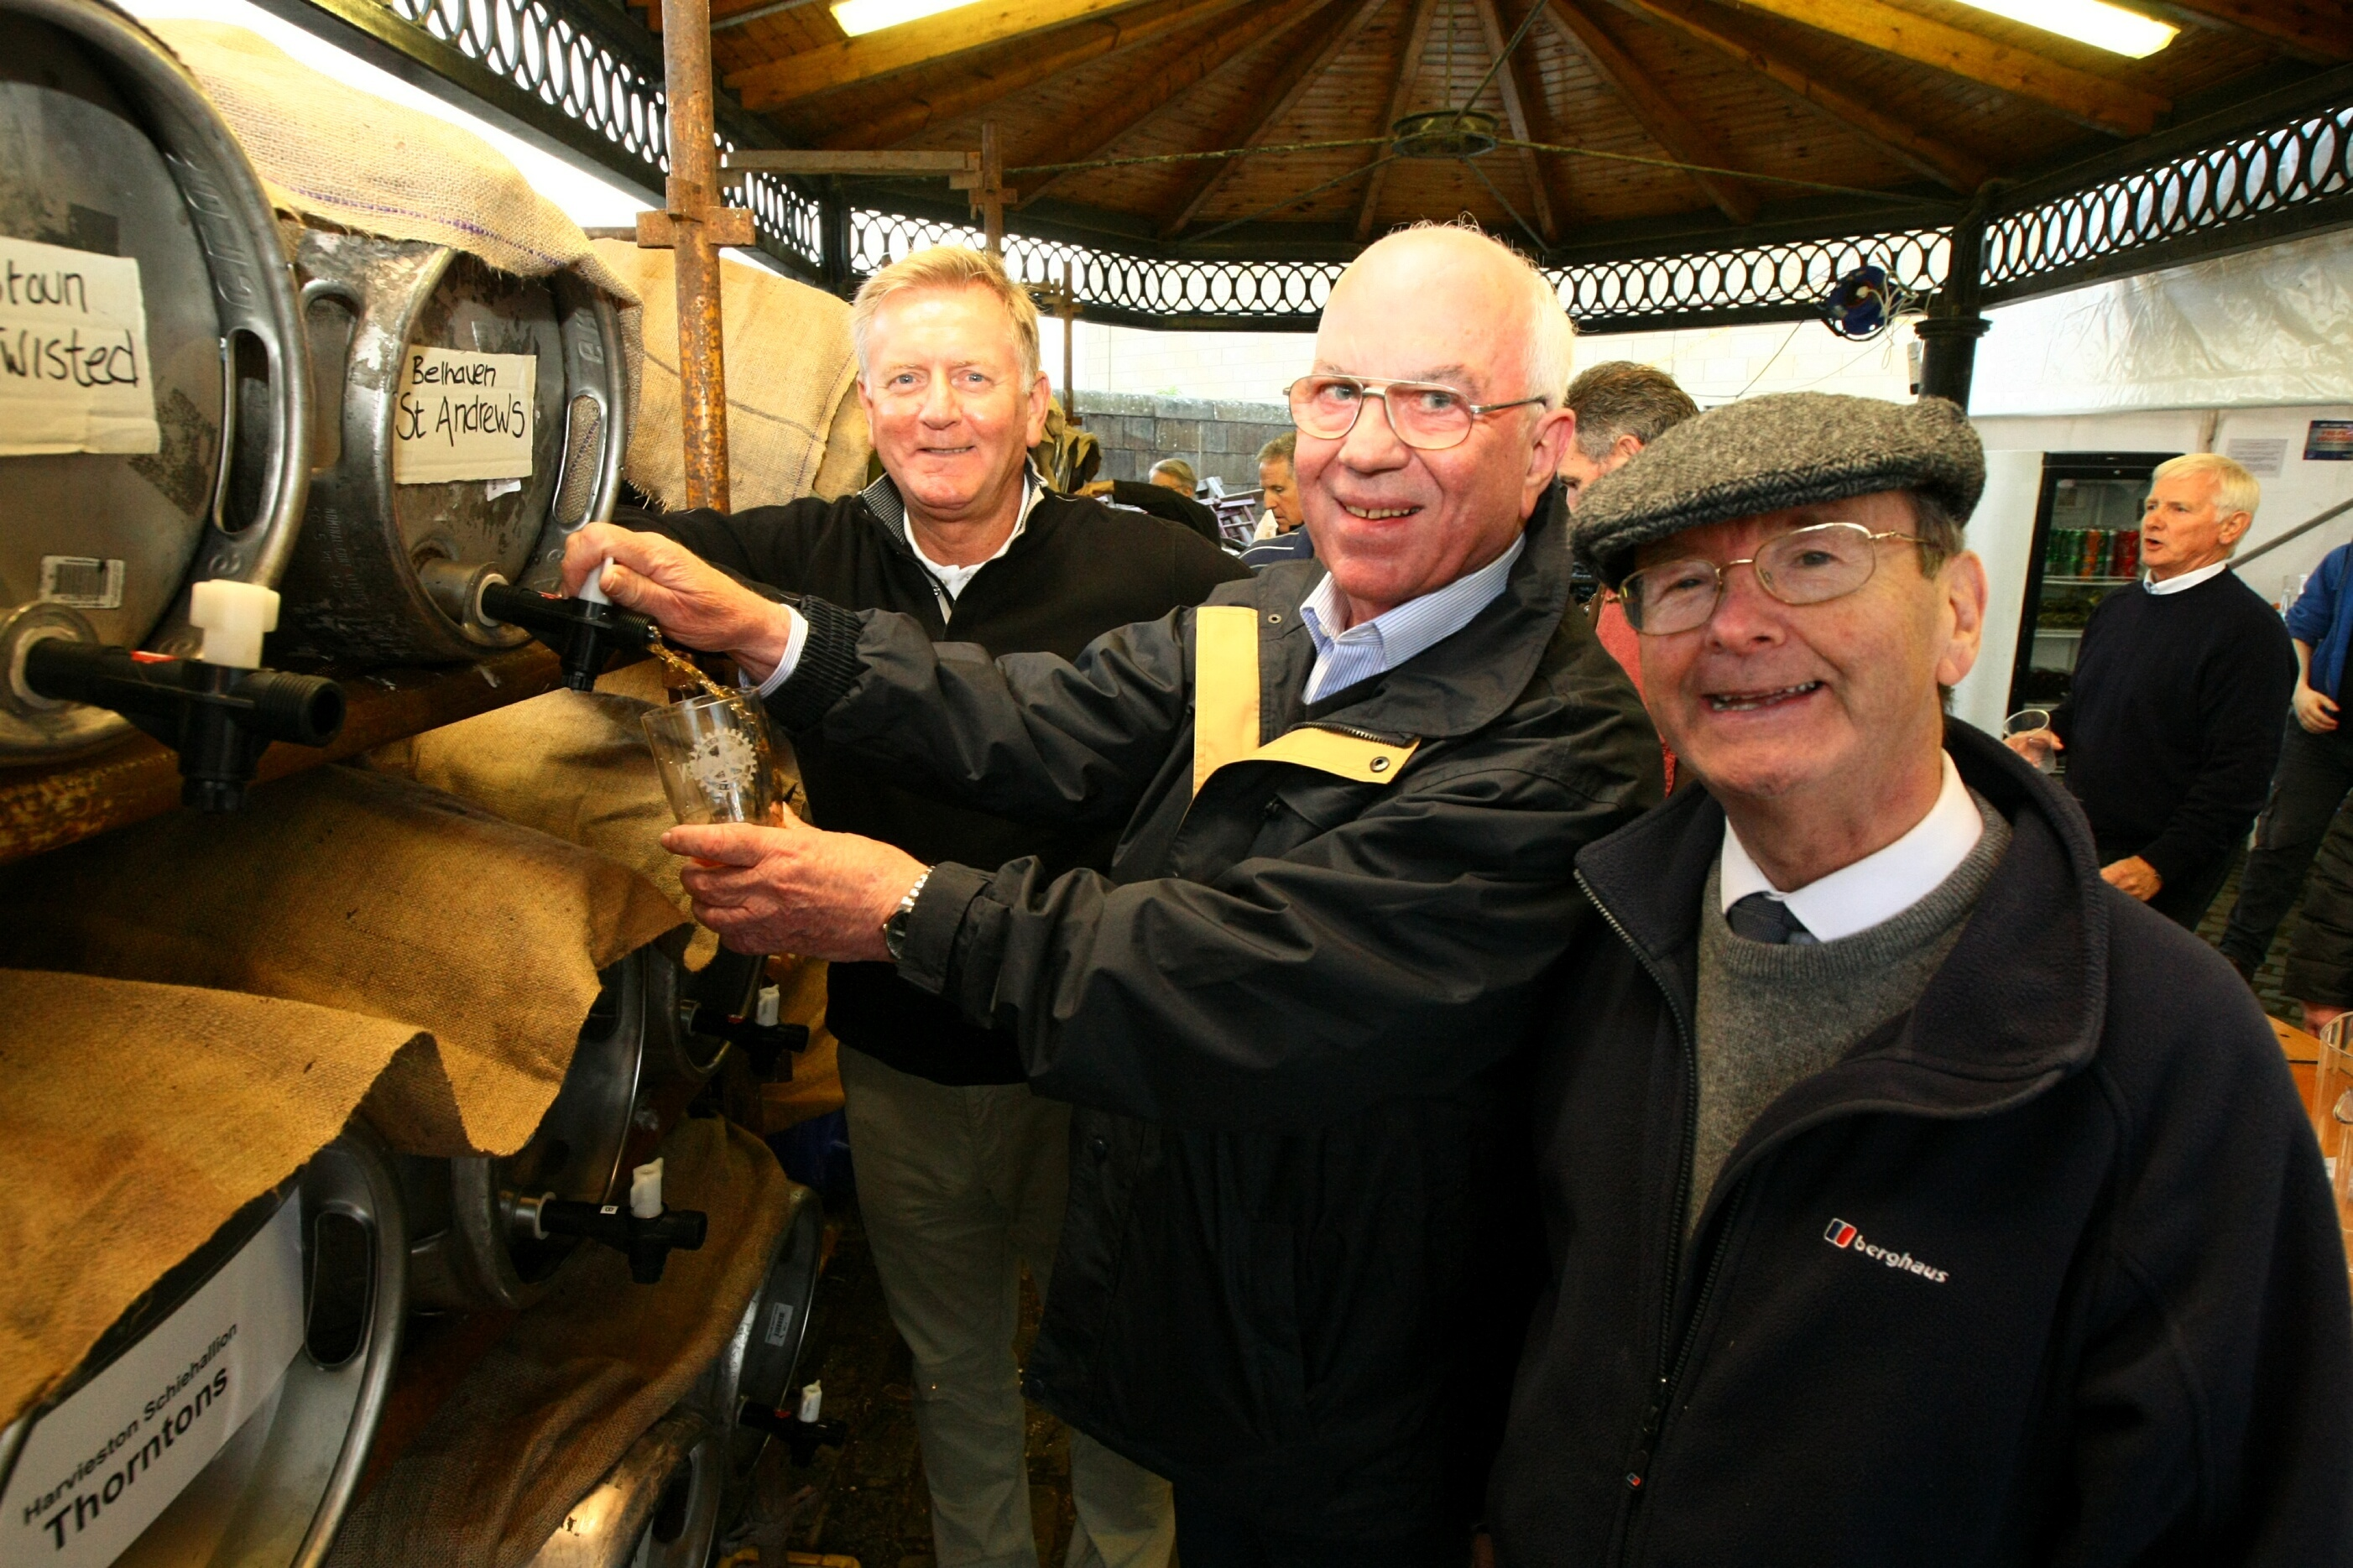 Robert Dundee, Dundee Rotary Club president Peter Leyland and Jonathan Stewart sample the beers.